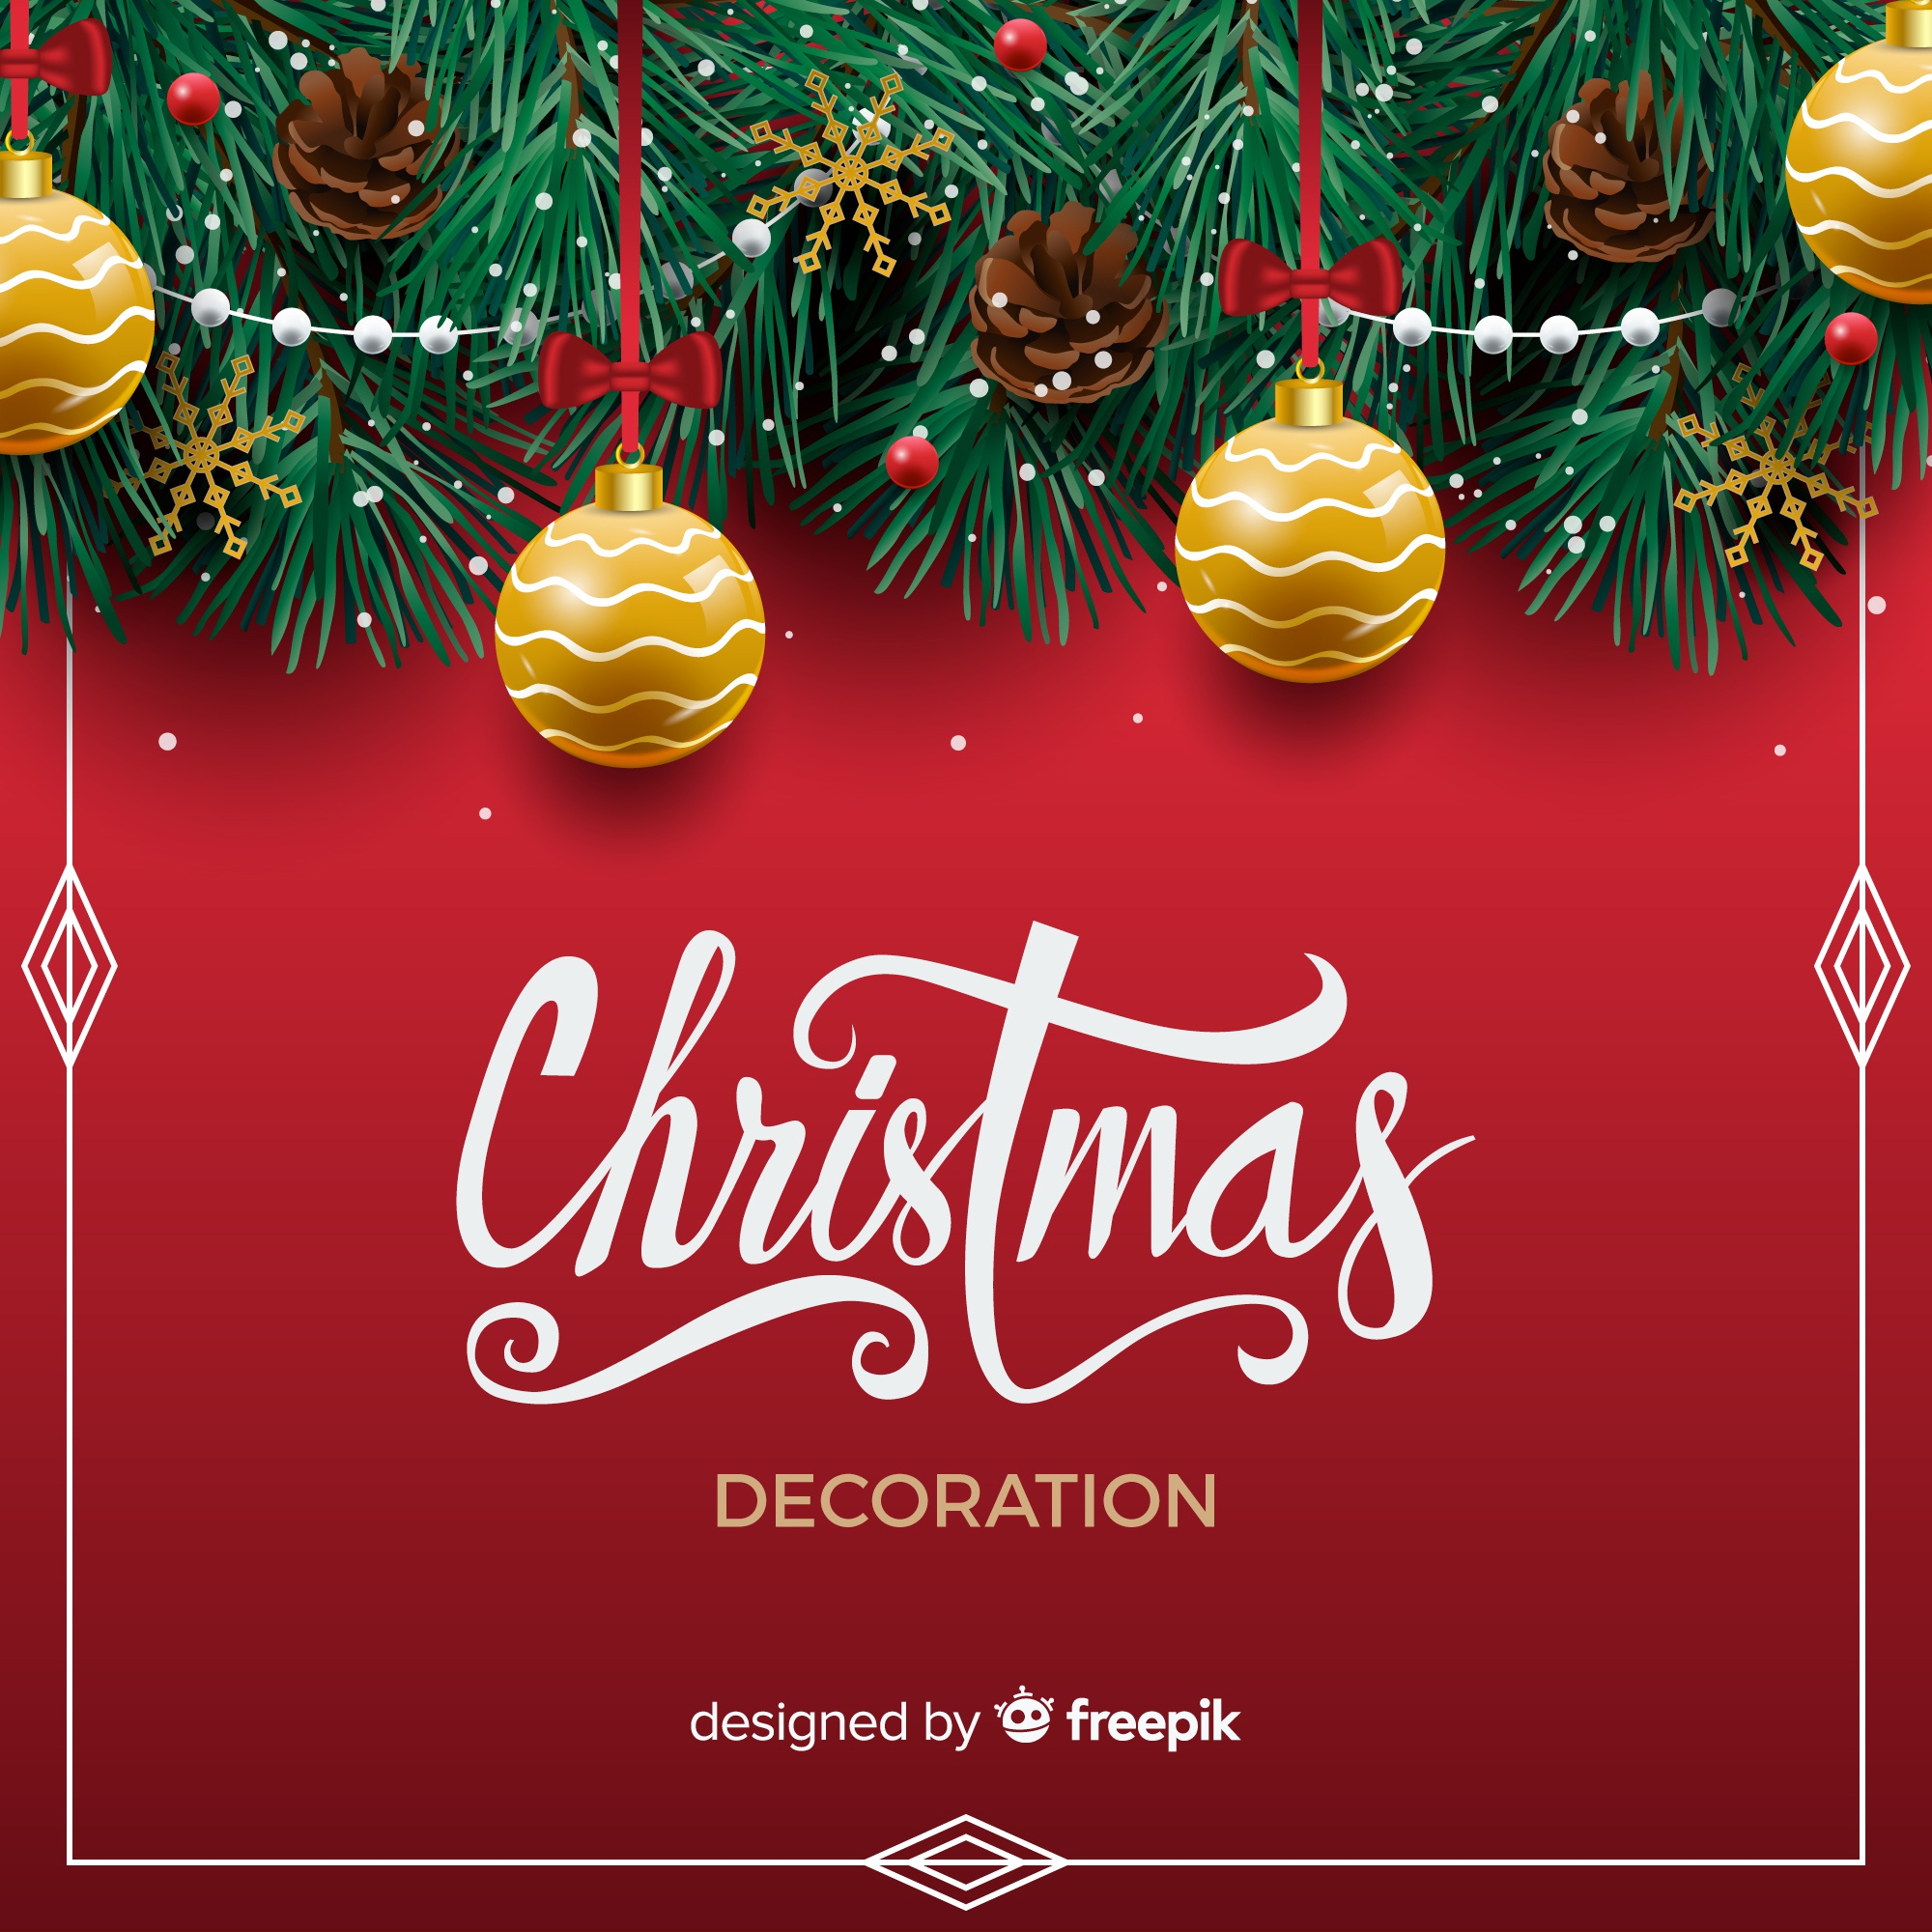 Christmas Vectors 102300 Free Files In Ai Eps Format